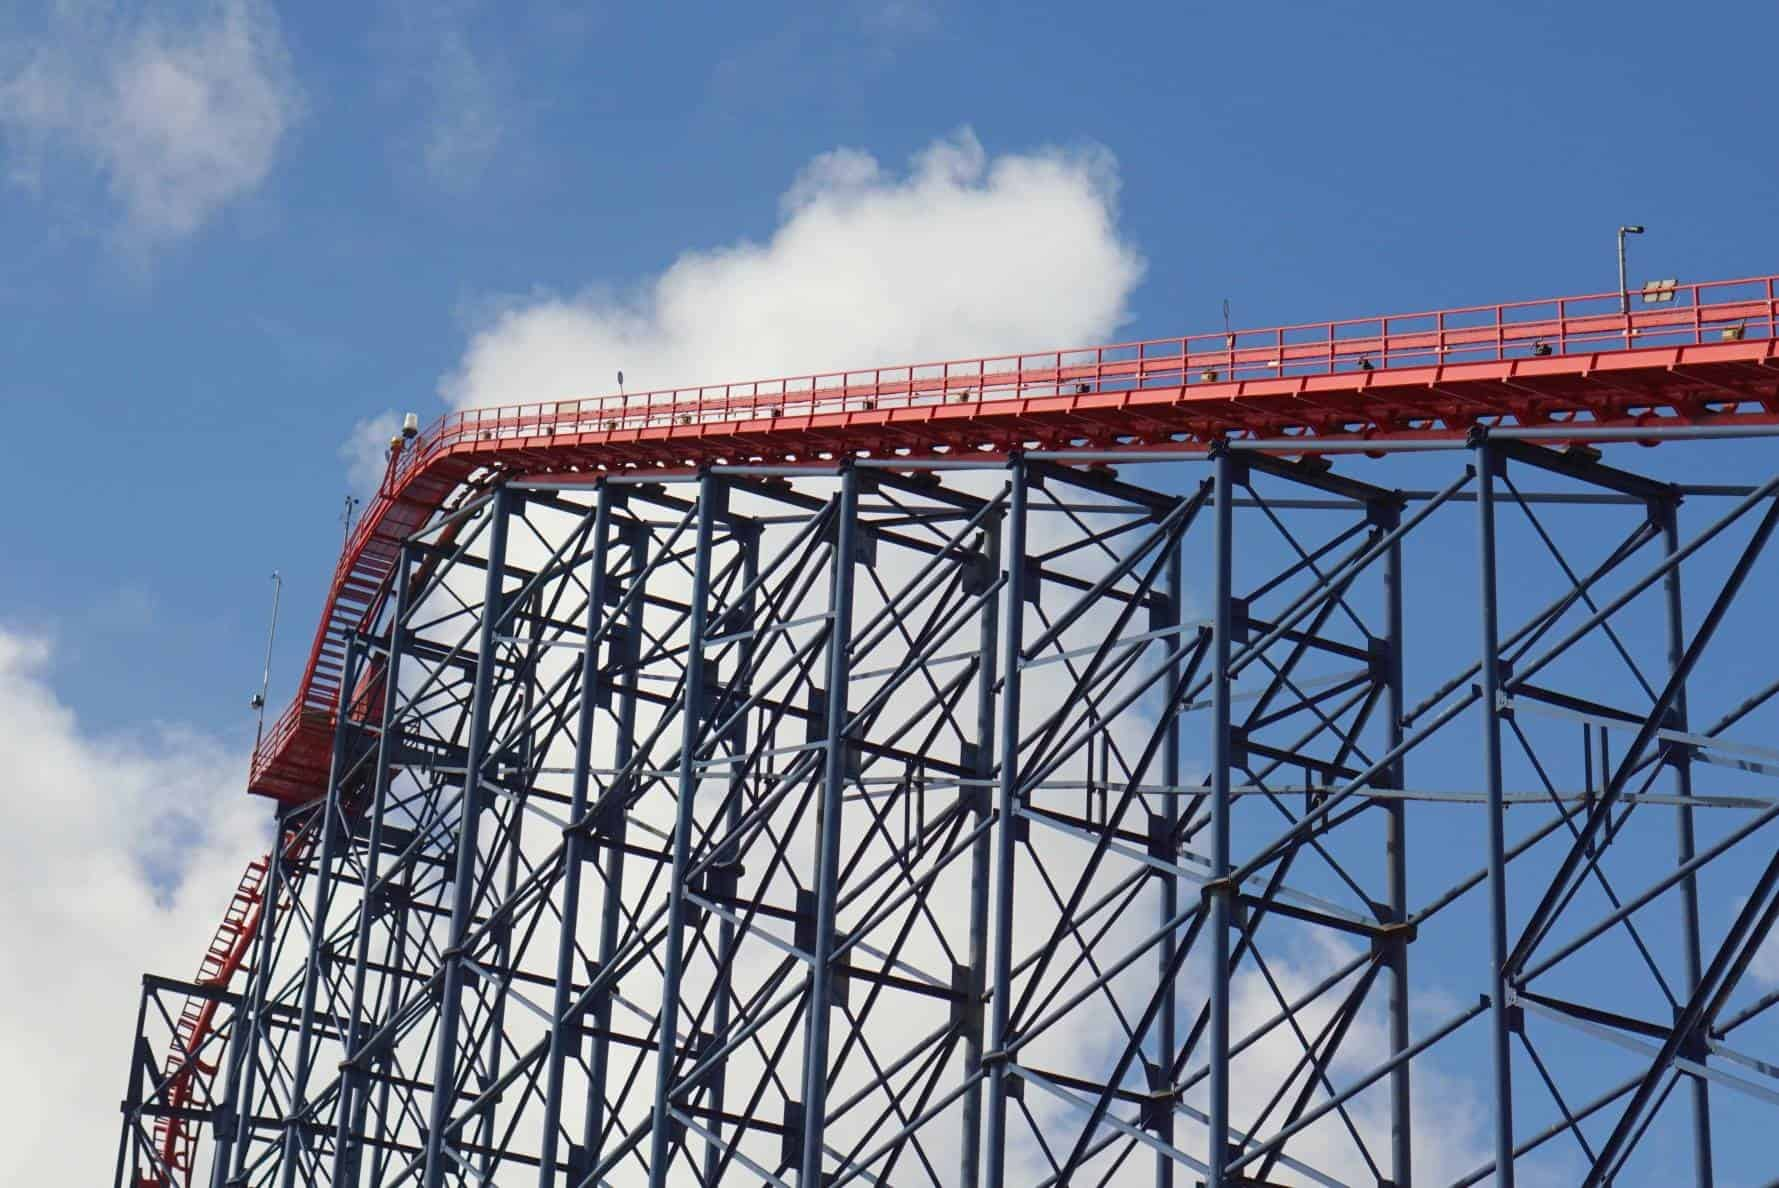 A Birthday At Blackpool Pleasure Beach